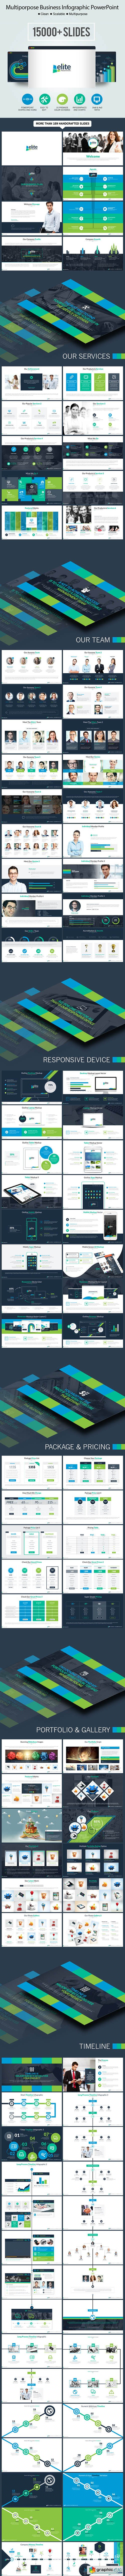 Multipurpose Business Infographic PowerPoint